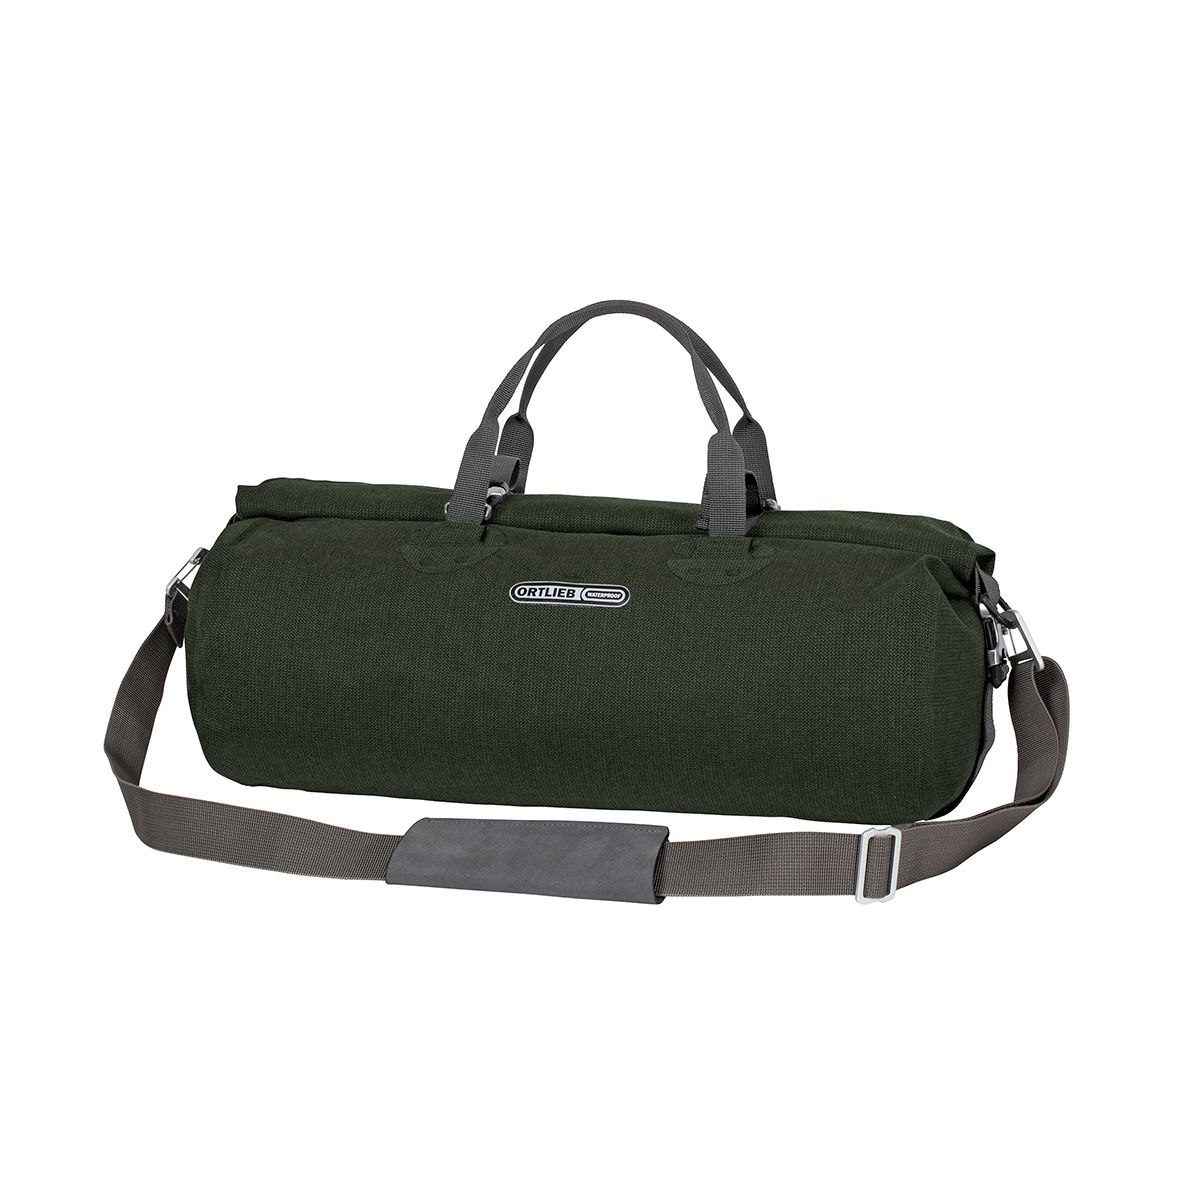 RACK-PACK URBAN 24 bag